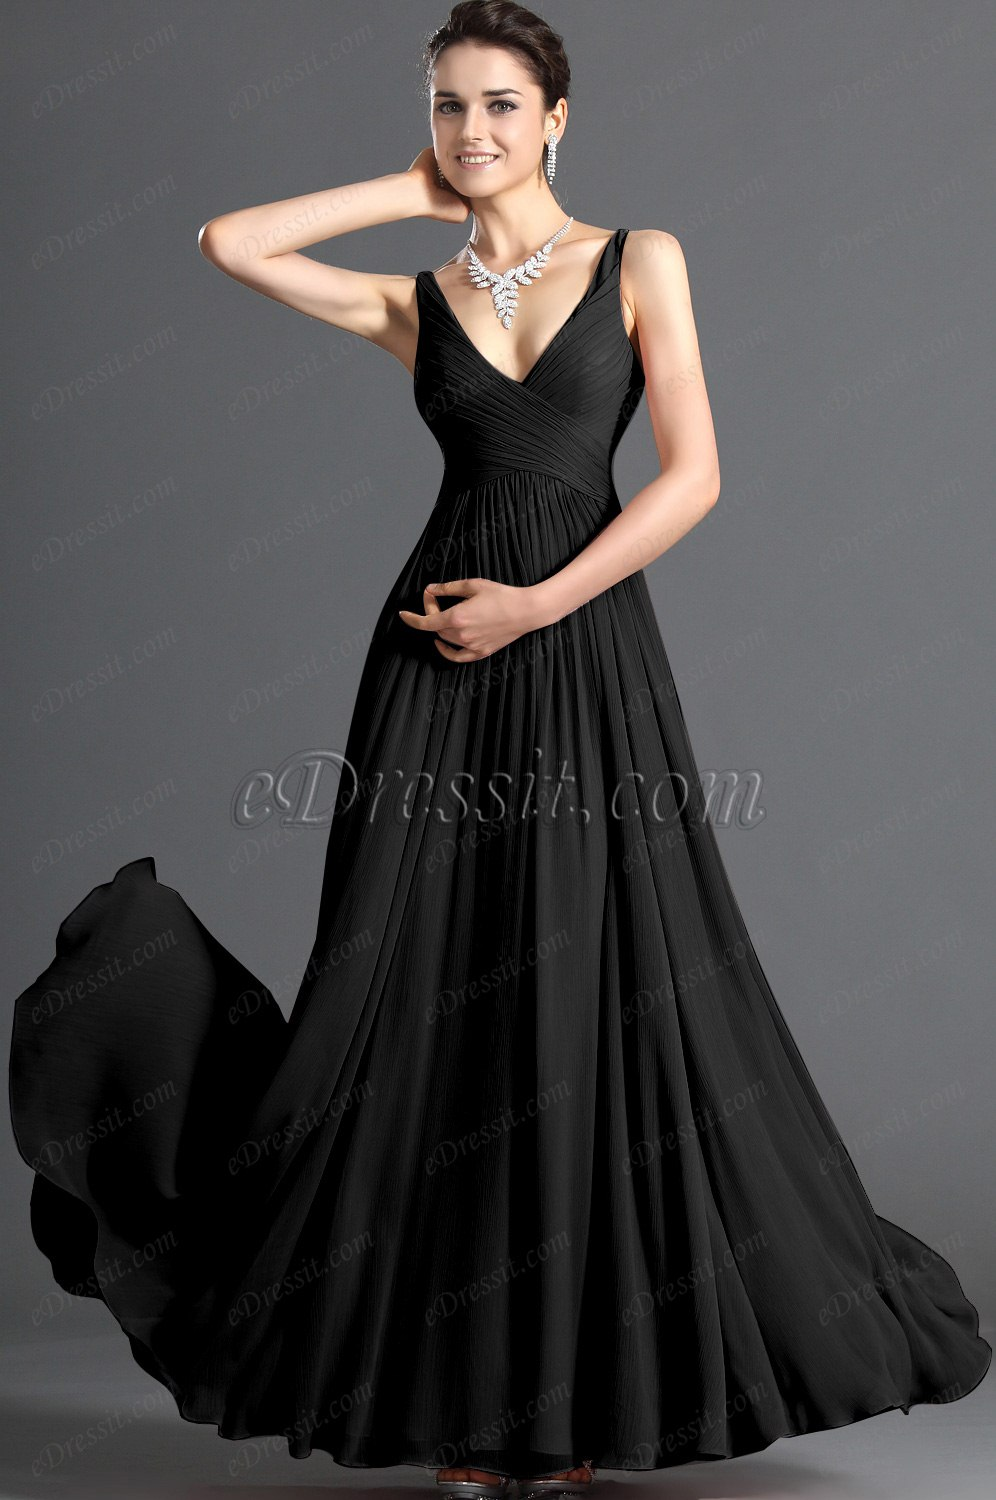 Clearance Sale !eDressit 2012 New Elegant V-cut Evening Dress  Black (00120801B)